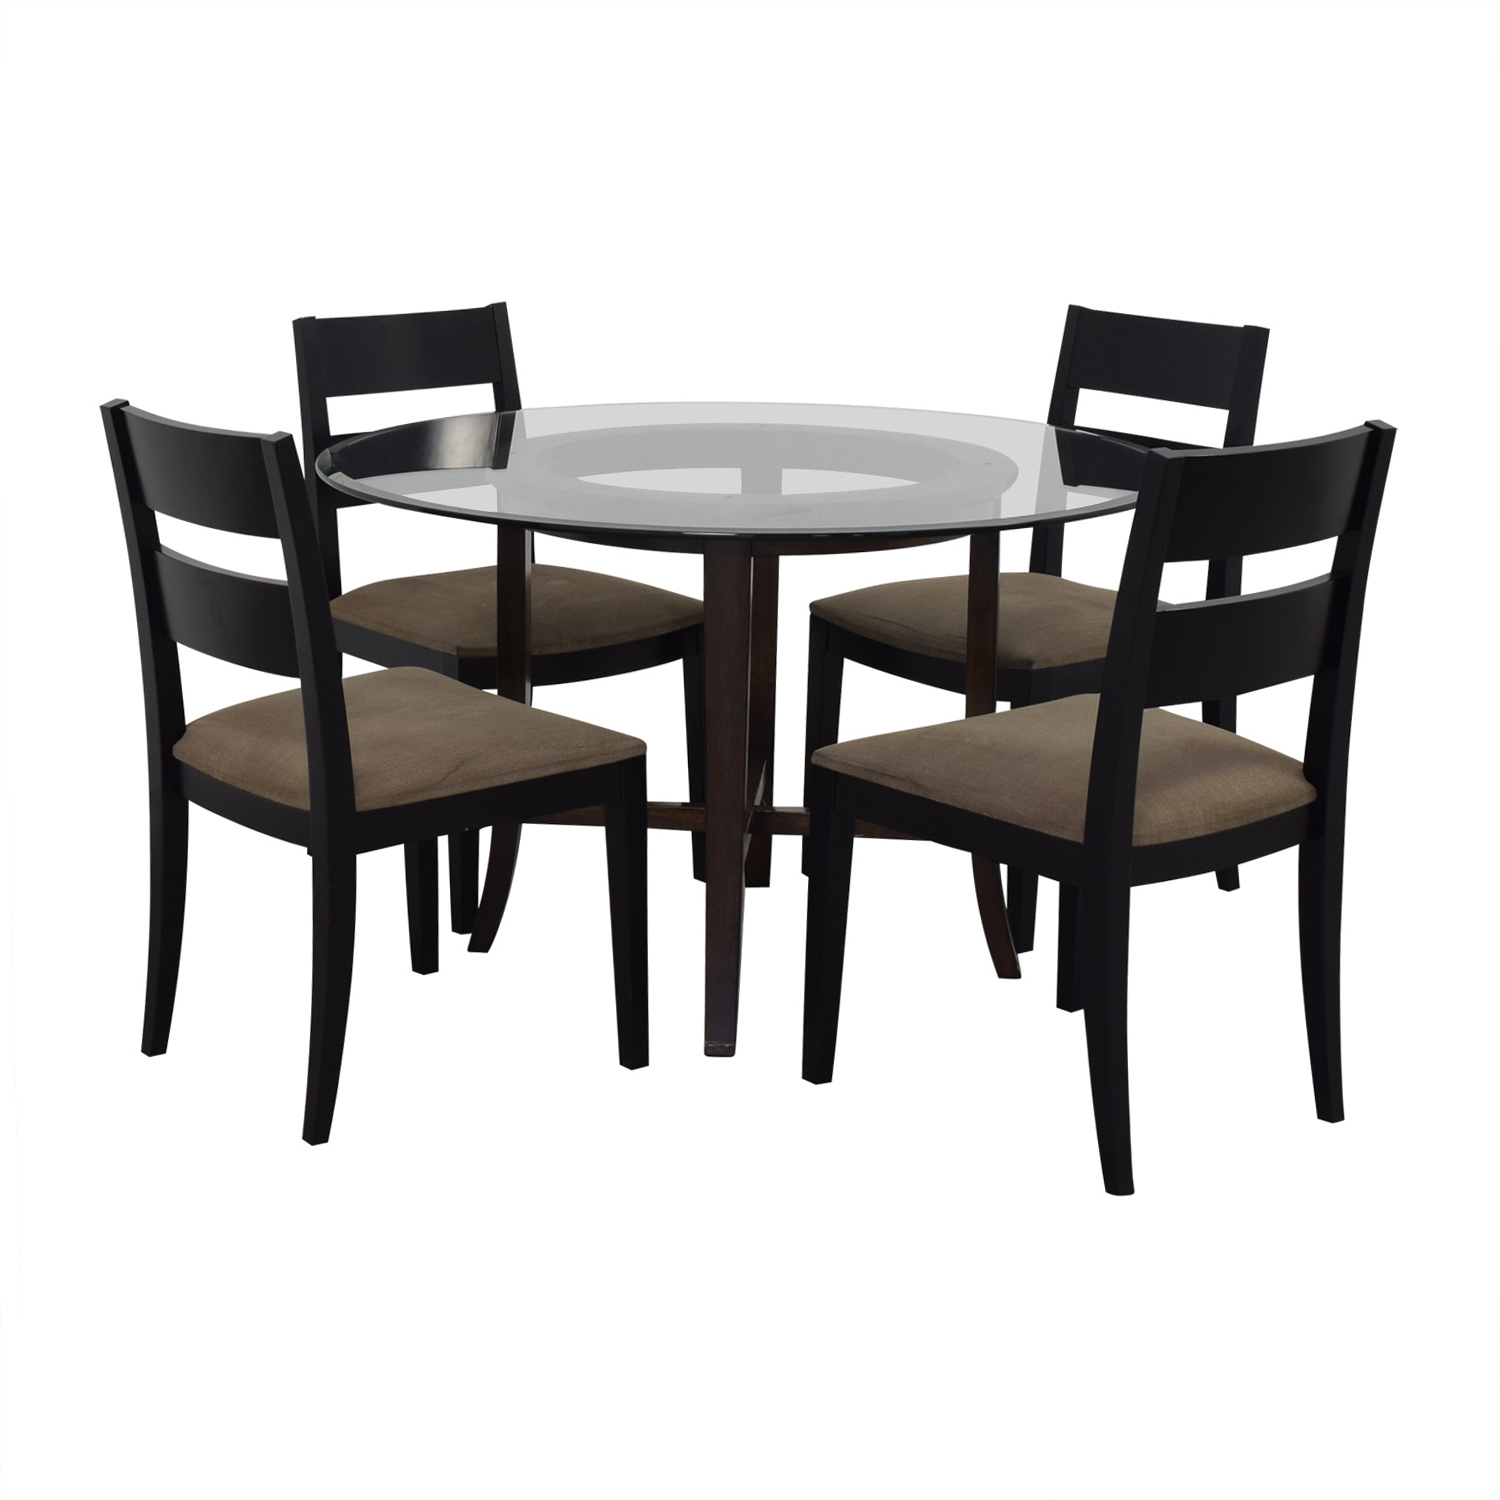 buy Crate & Barrel Halo Table With Basque Upholstered Chairs Crate & Barrel Dinner Tables